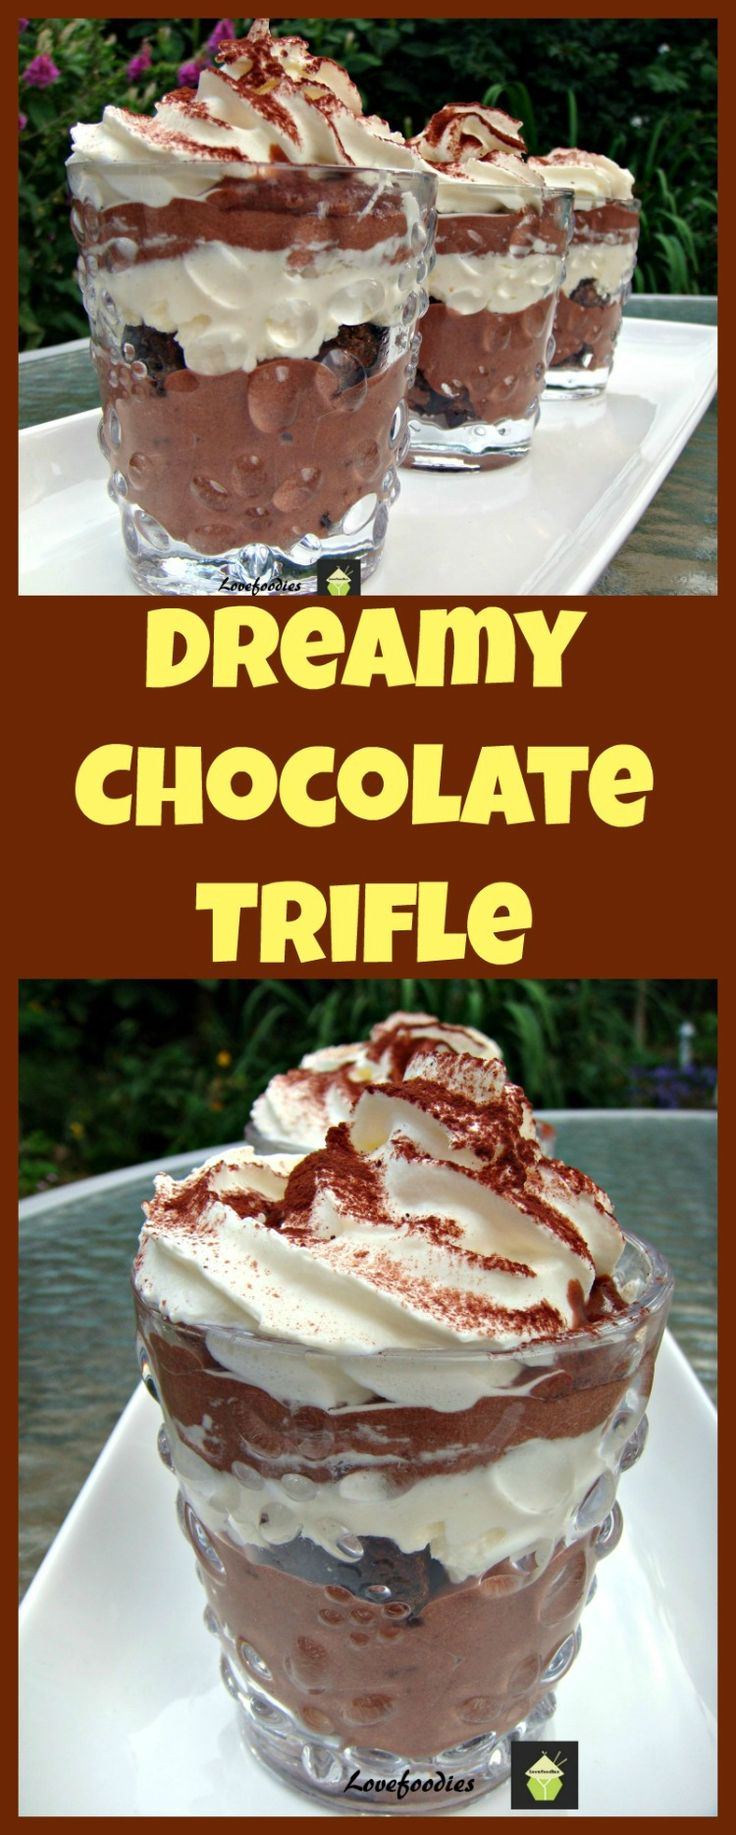 Dreamy Chocolate Brownie Trifle. Come and see the goodies in this lovely…